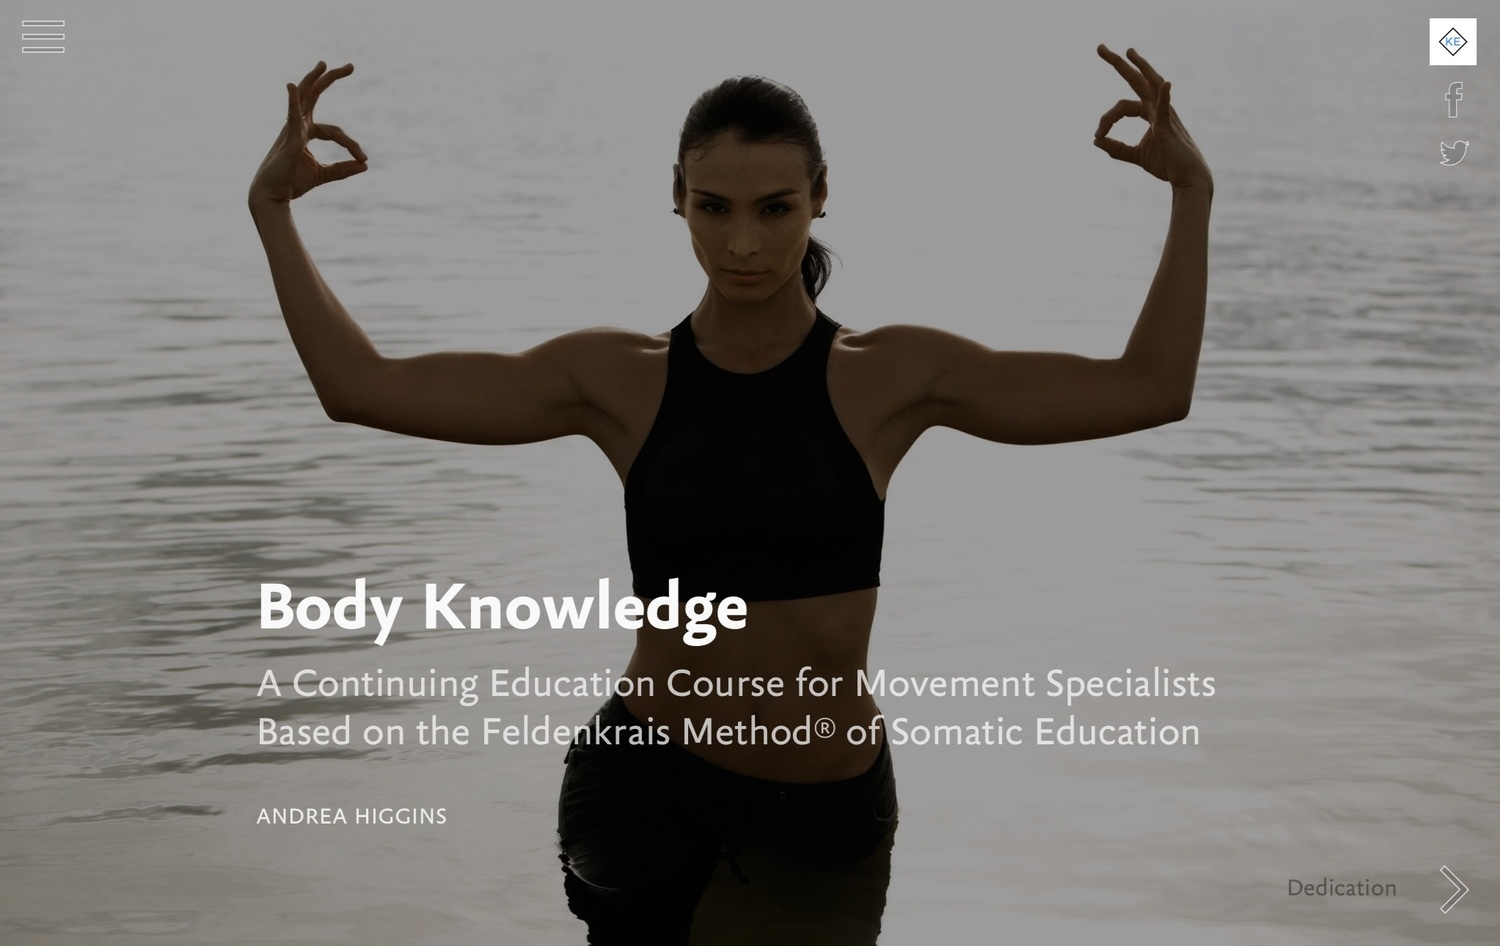 Body Knowledge for Teaching Body Mastery